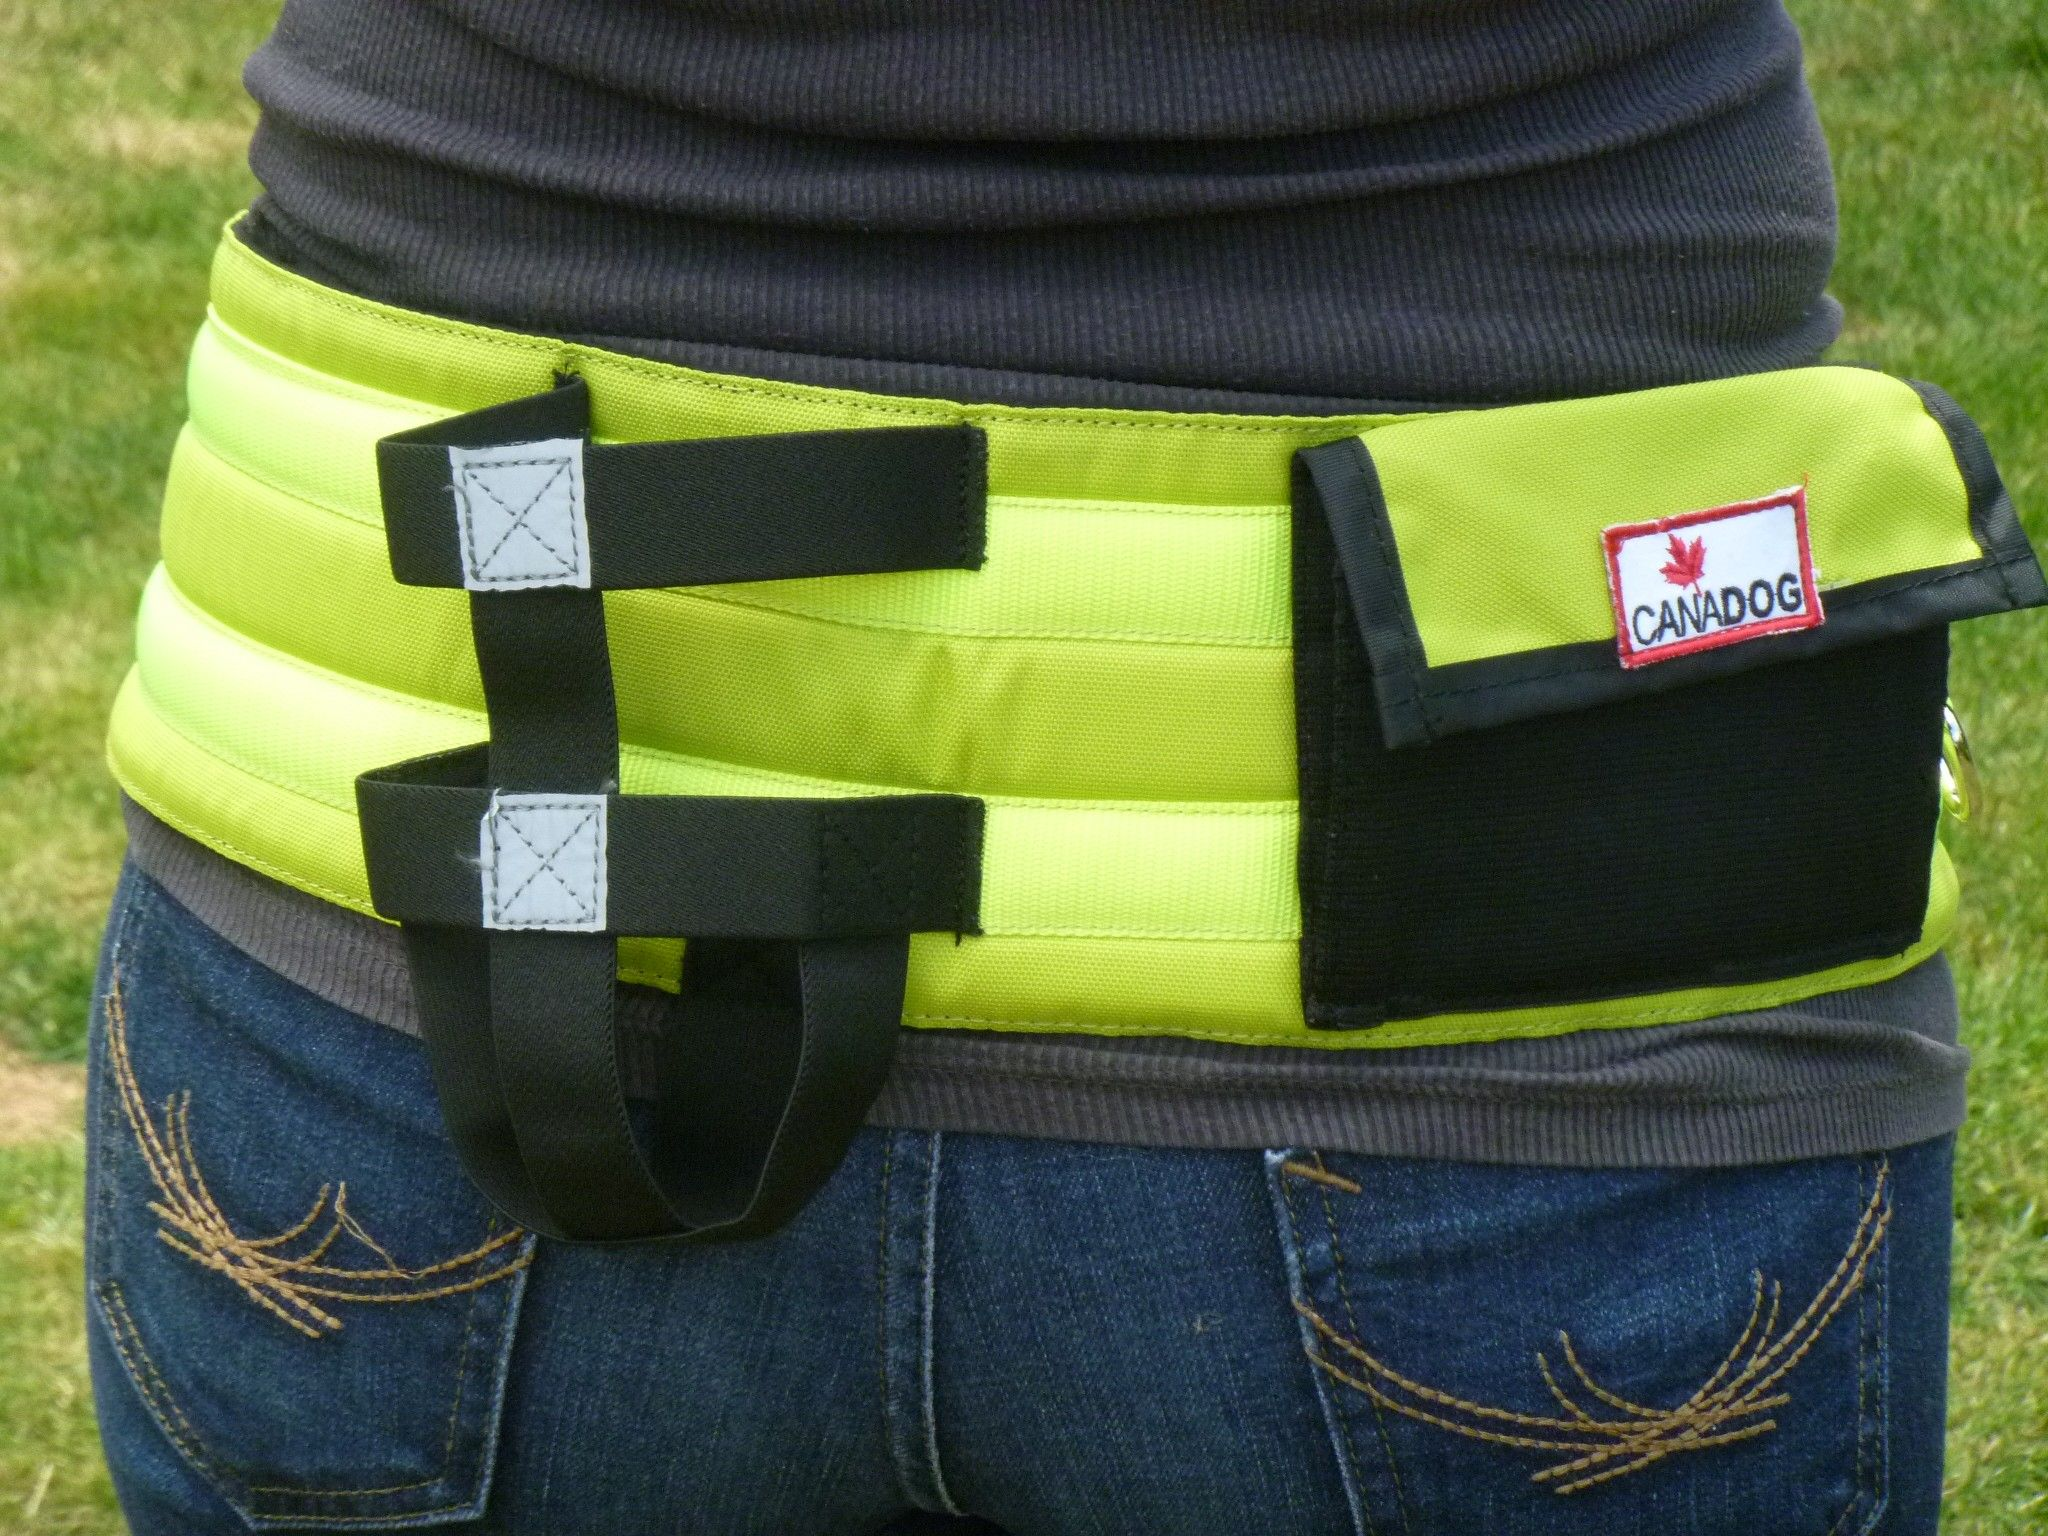 Deluxe Walking Belt with Pocket and Water Bottle Holder - Florescent Yellow